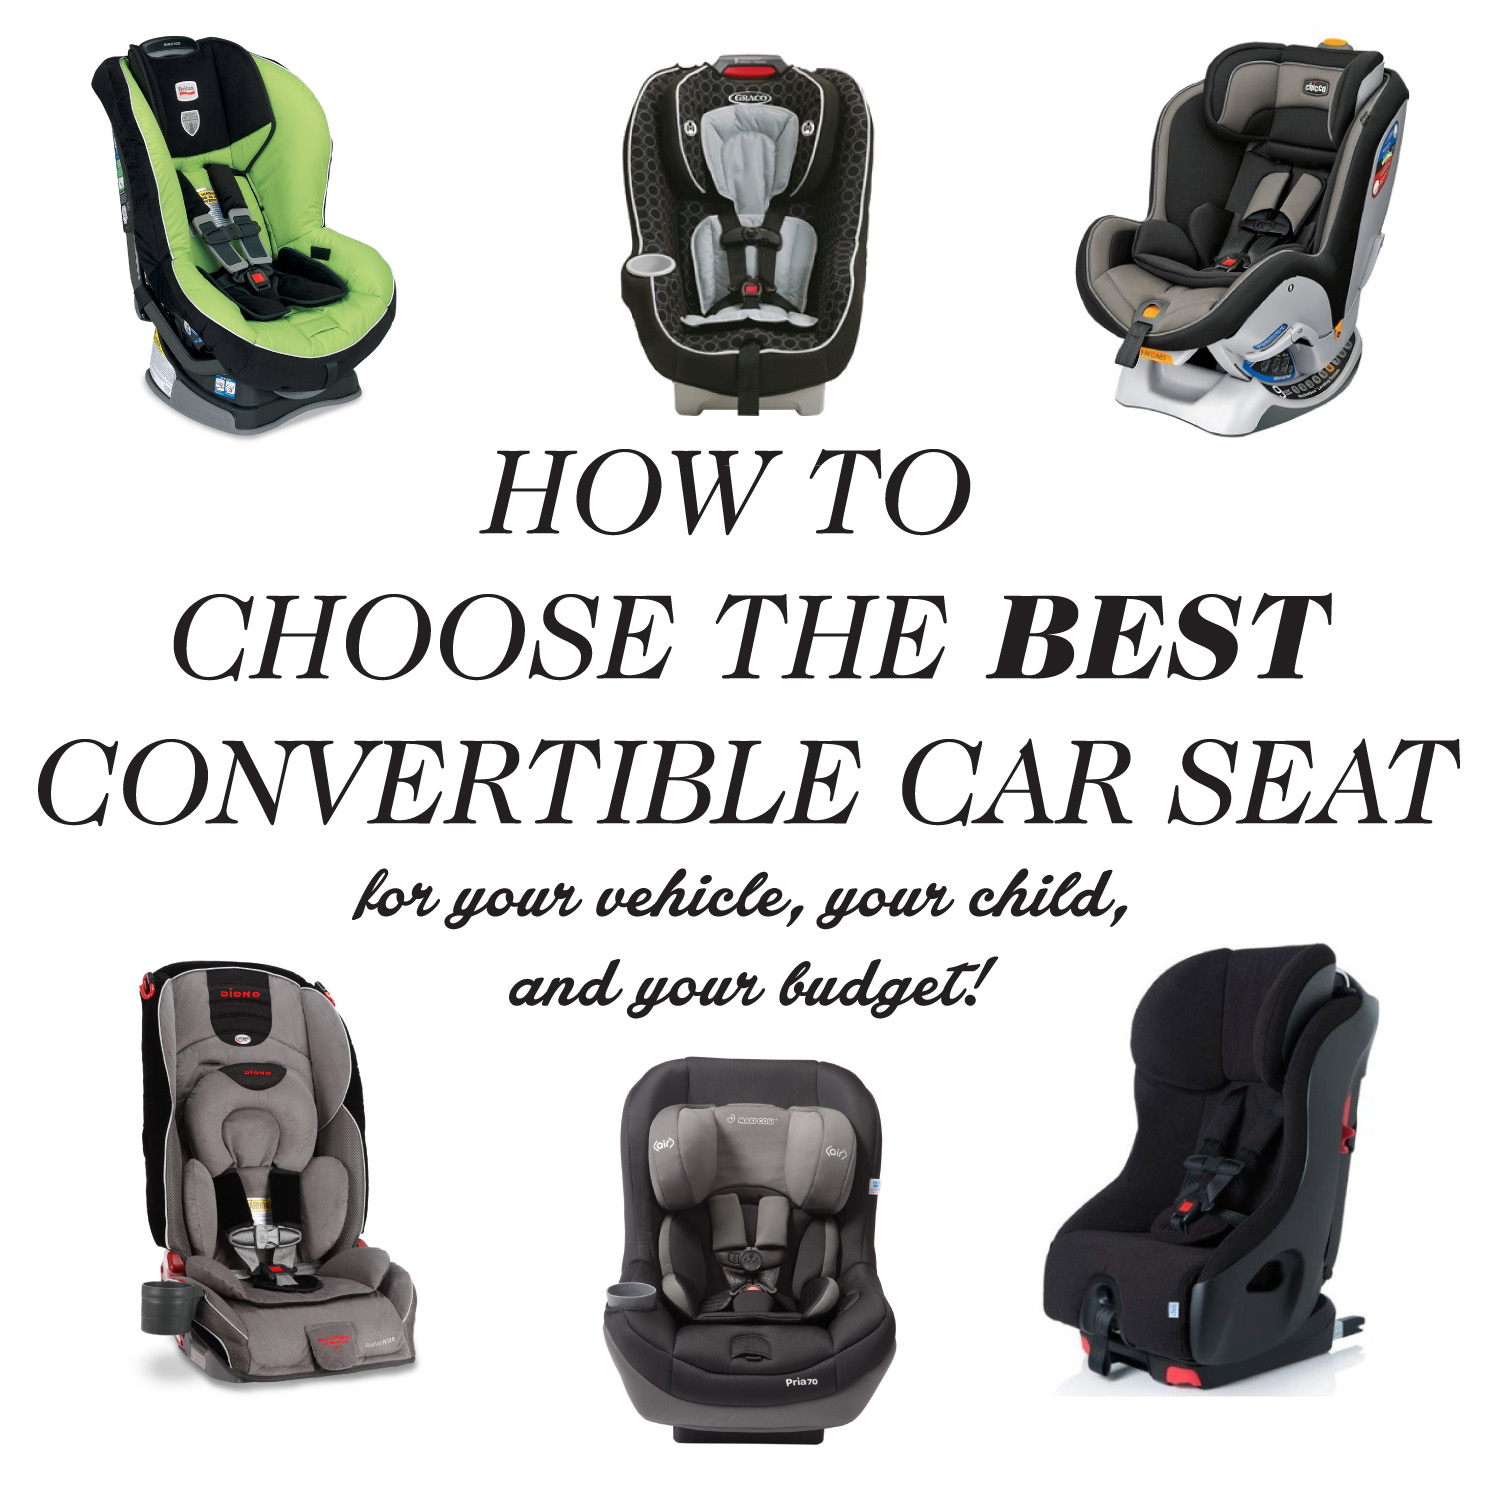 Convertible Car Seat Shopping Guide